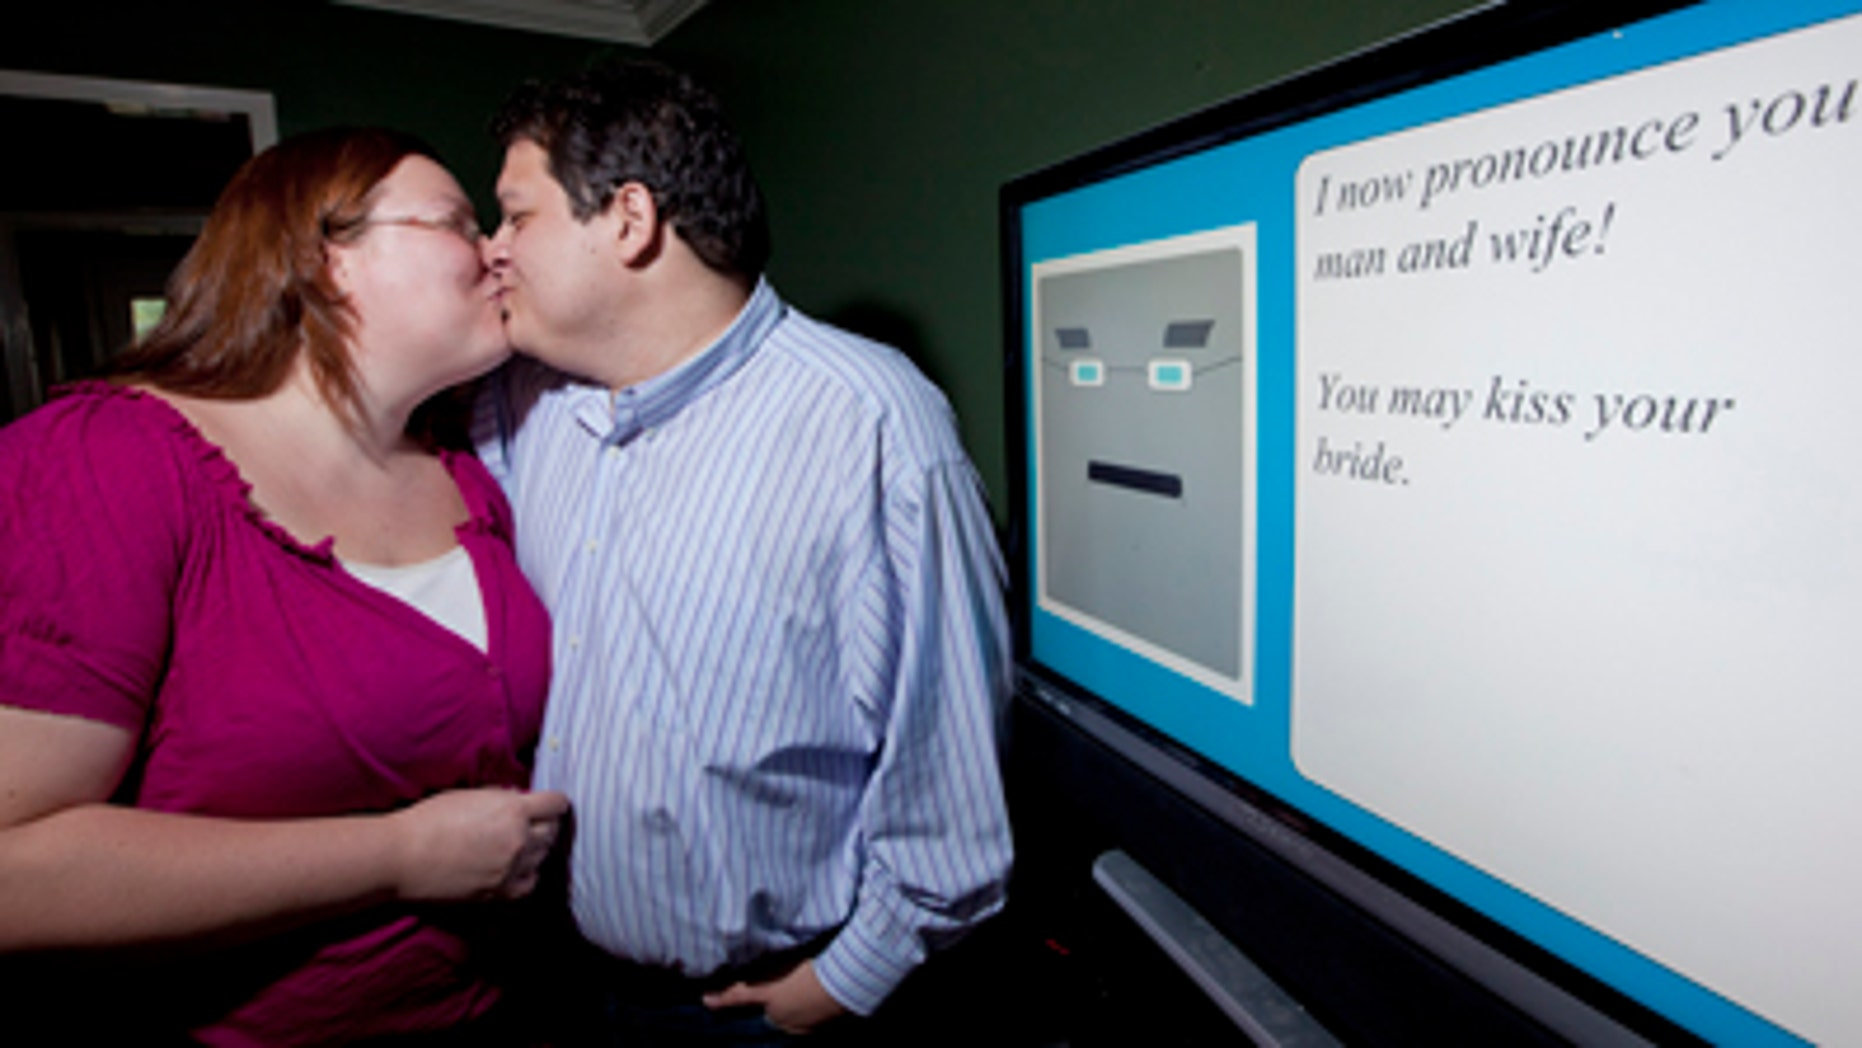 July 28, 2011: Miguel Hanson, right, kisses his fiancee Diana Wesley by the computer, in Humble, Texas. The couple couldn't get a friend to serve as the minister at their wedding, so they decided to create their own.